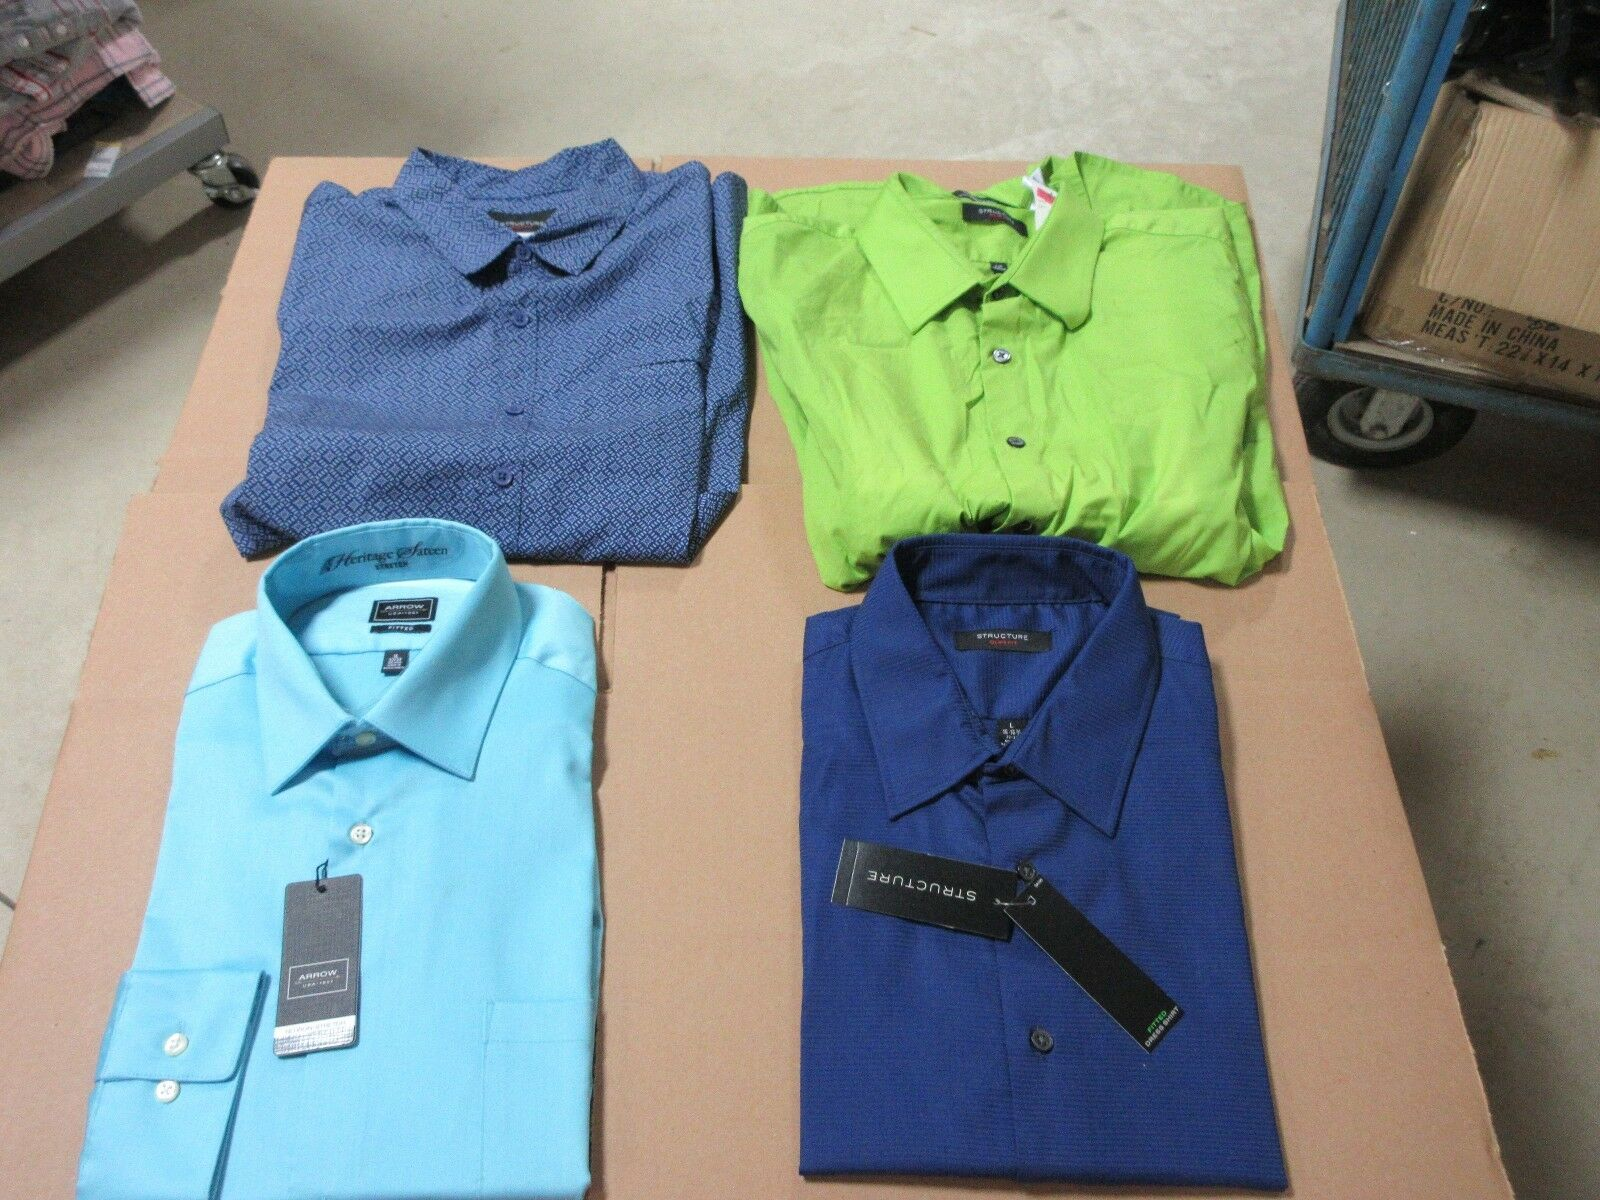 4 MENS COLLAR DRESS SHIRTS BUTTON DOWN BRIGHT PATTERN CLOTHES BULK LOT NEW